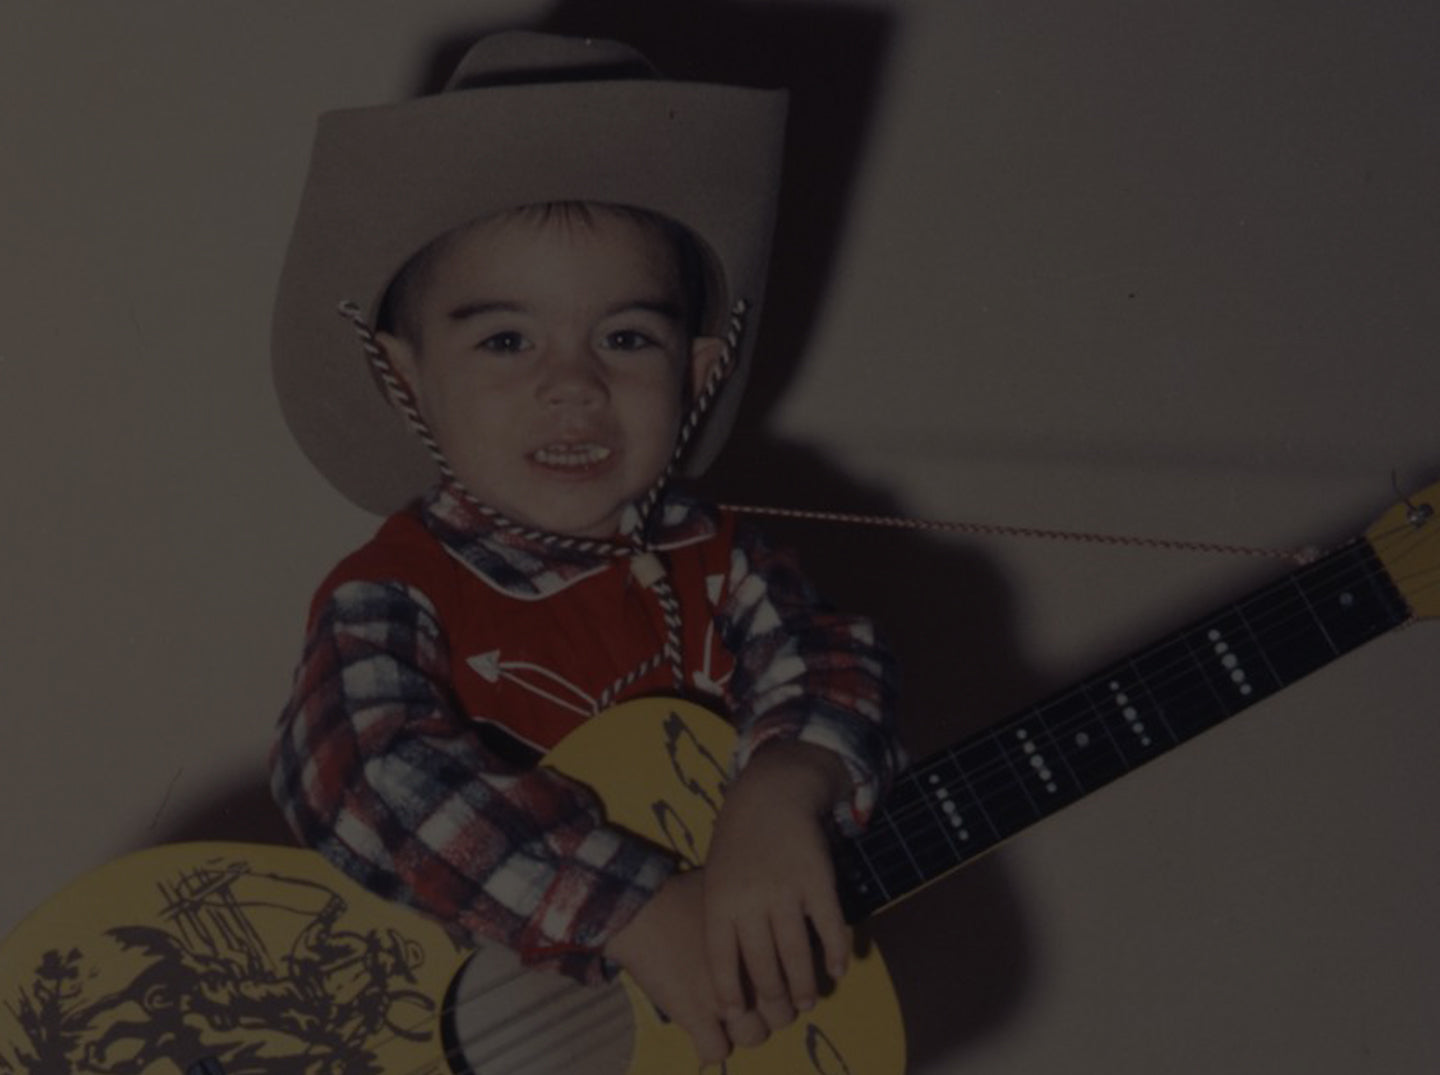 Marty get's his first cowboy guitar;